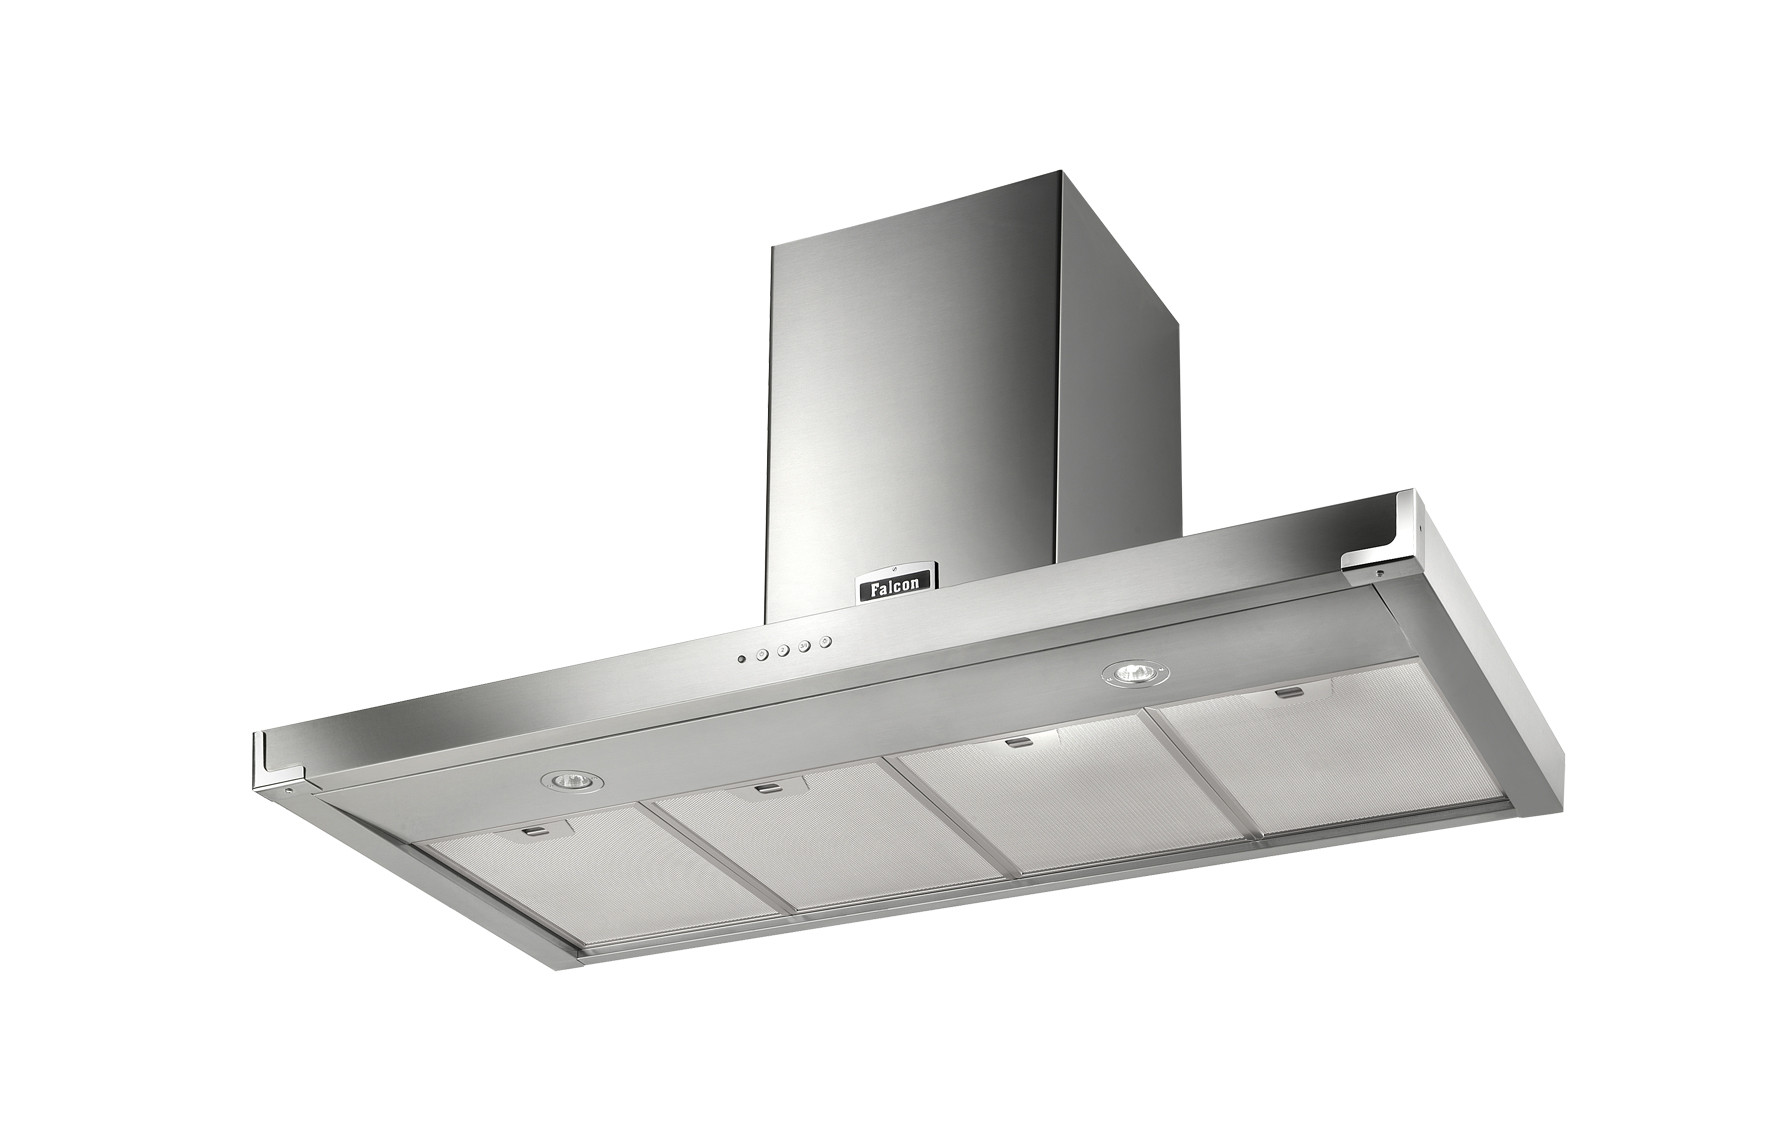 Falcon 110cm Super Flat Hood Stainless Steel Chrome 92920 FHDSF1100SS/C